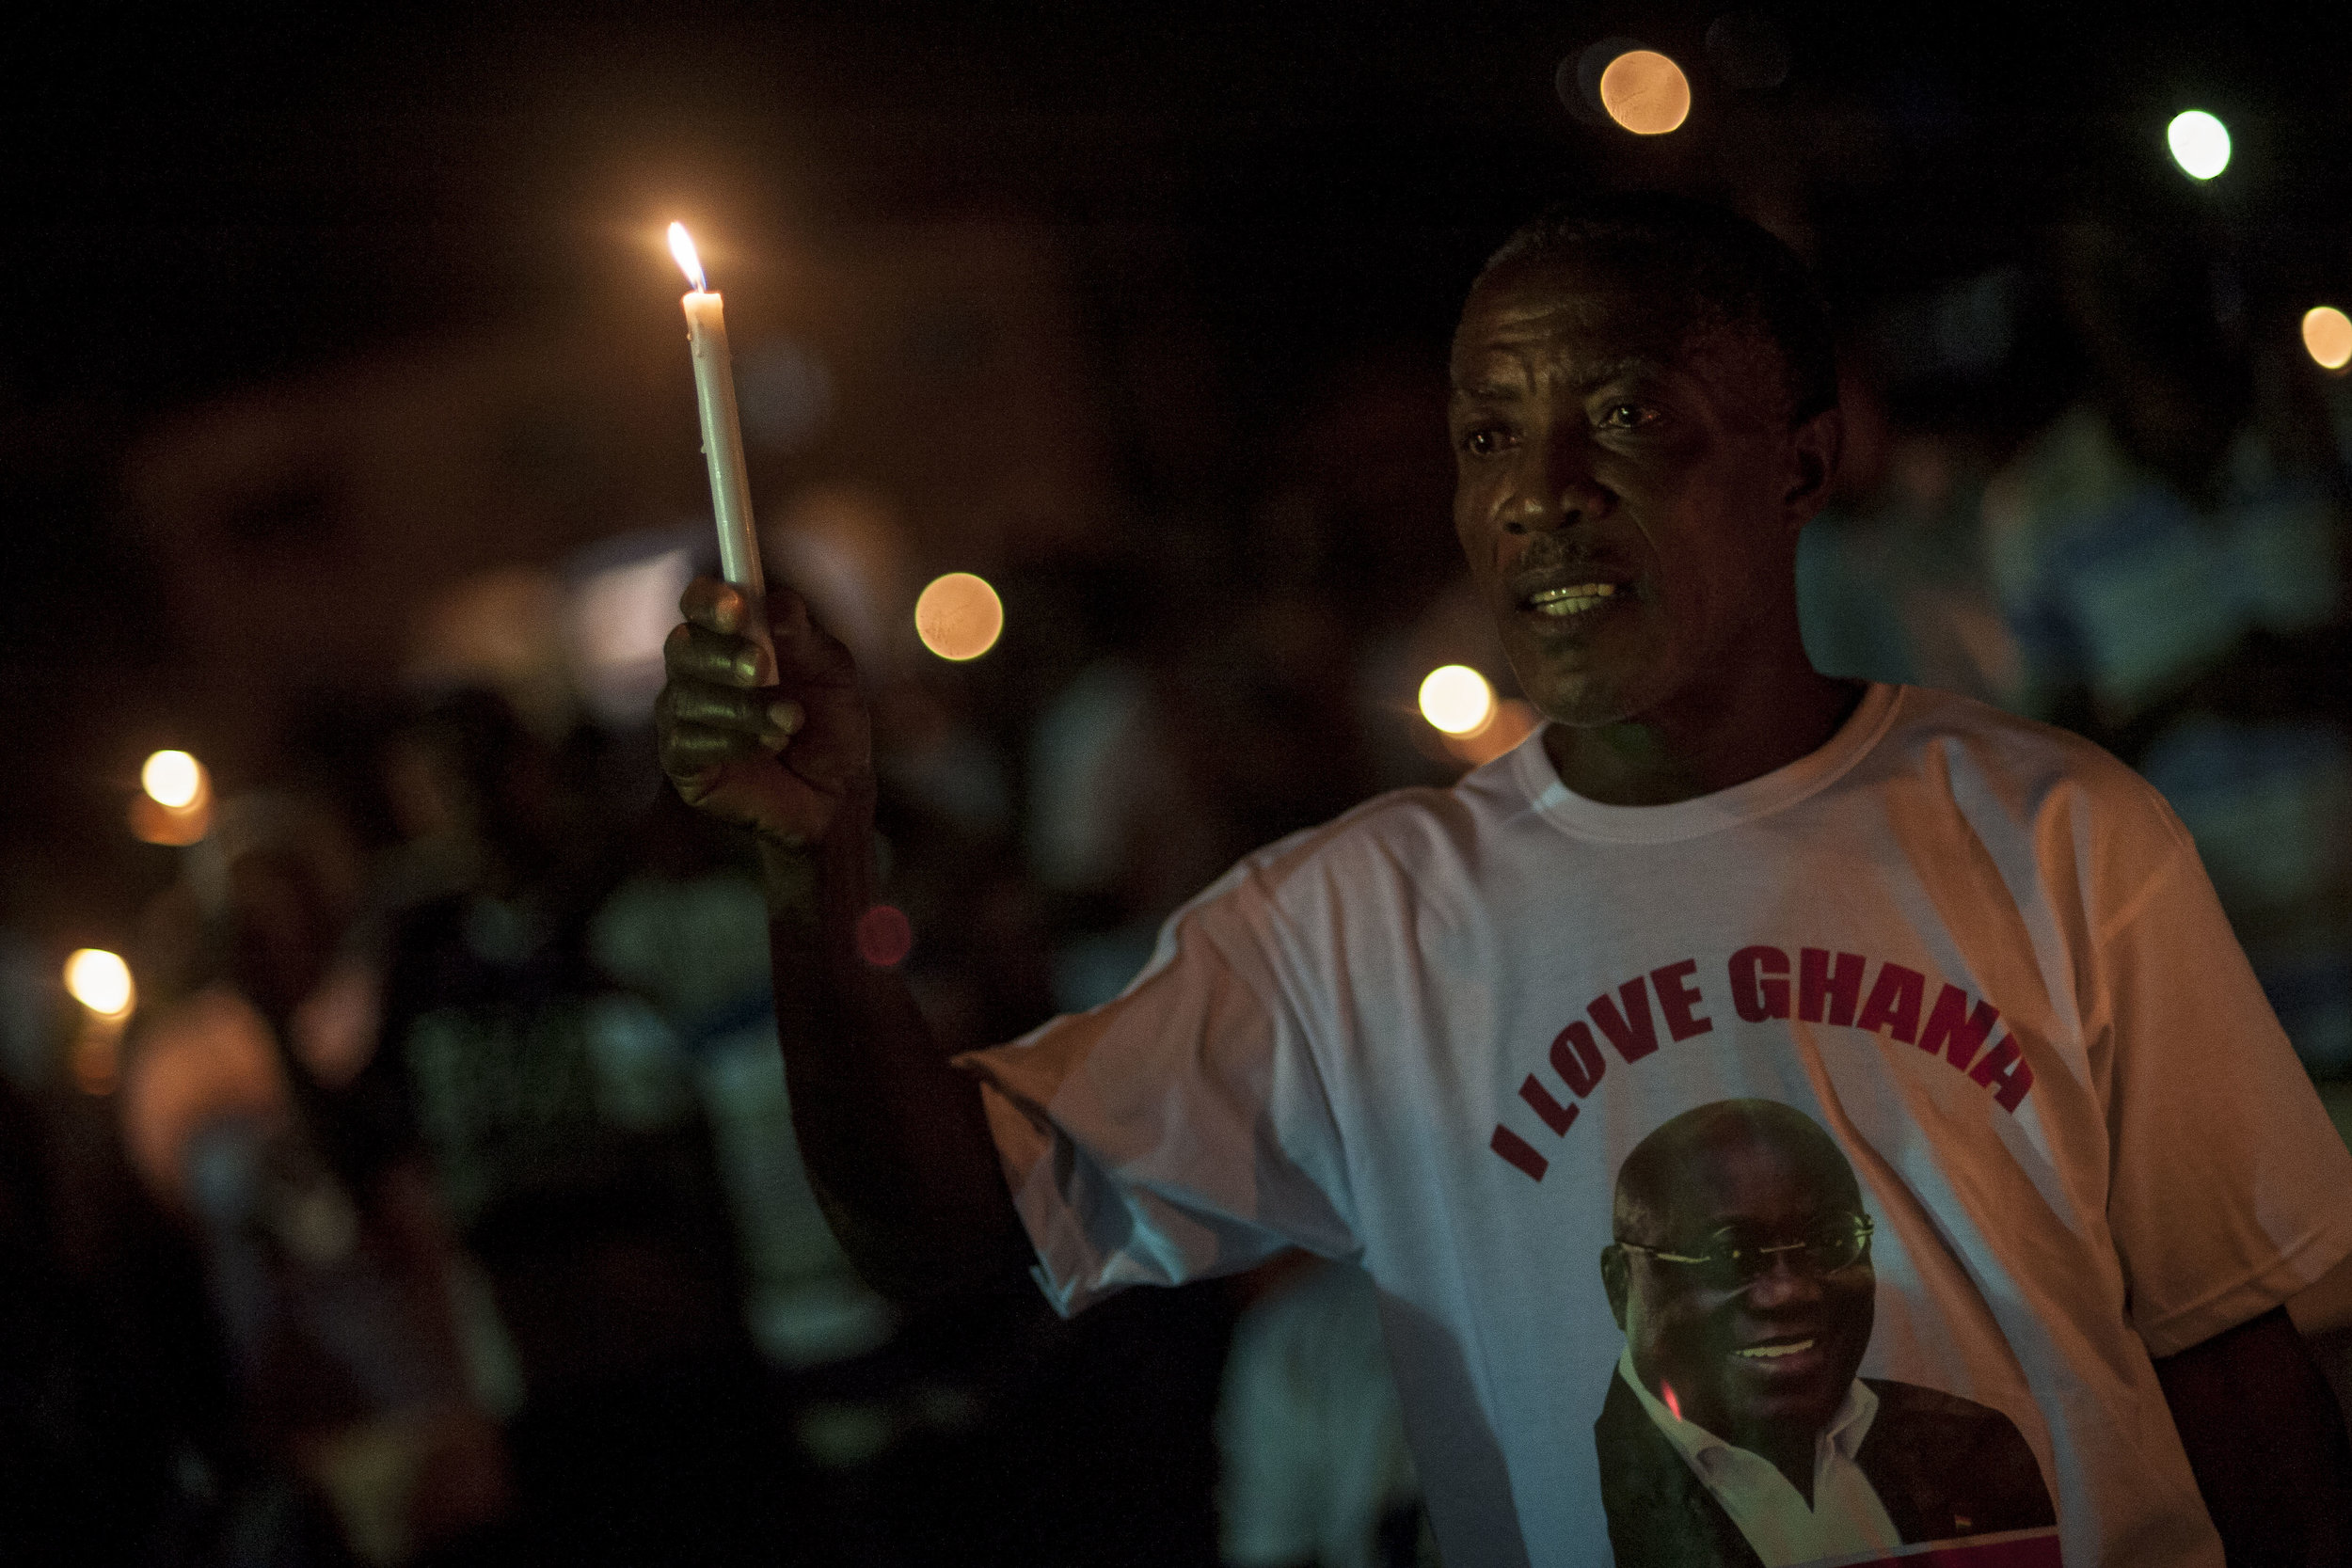 NPP Supporter with a t-shirt of Nana Akufo-Addo, New Patriotic Party (NPP) main candidate for the next general election on 7th December, pray during a religious ceremony in Koforidua, Ghana